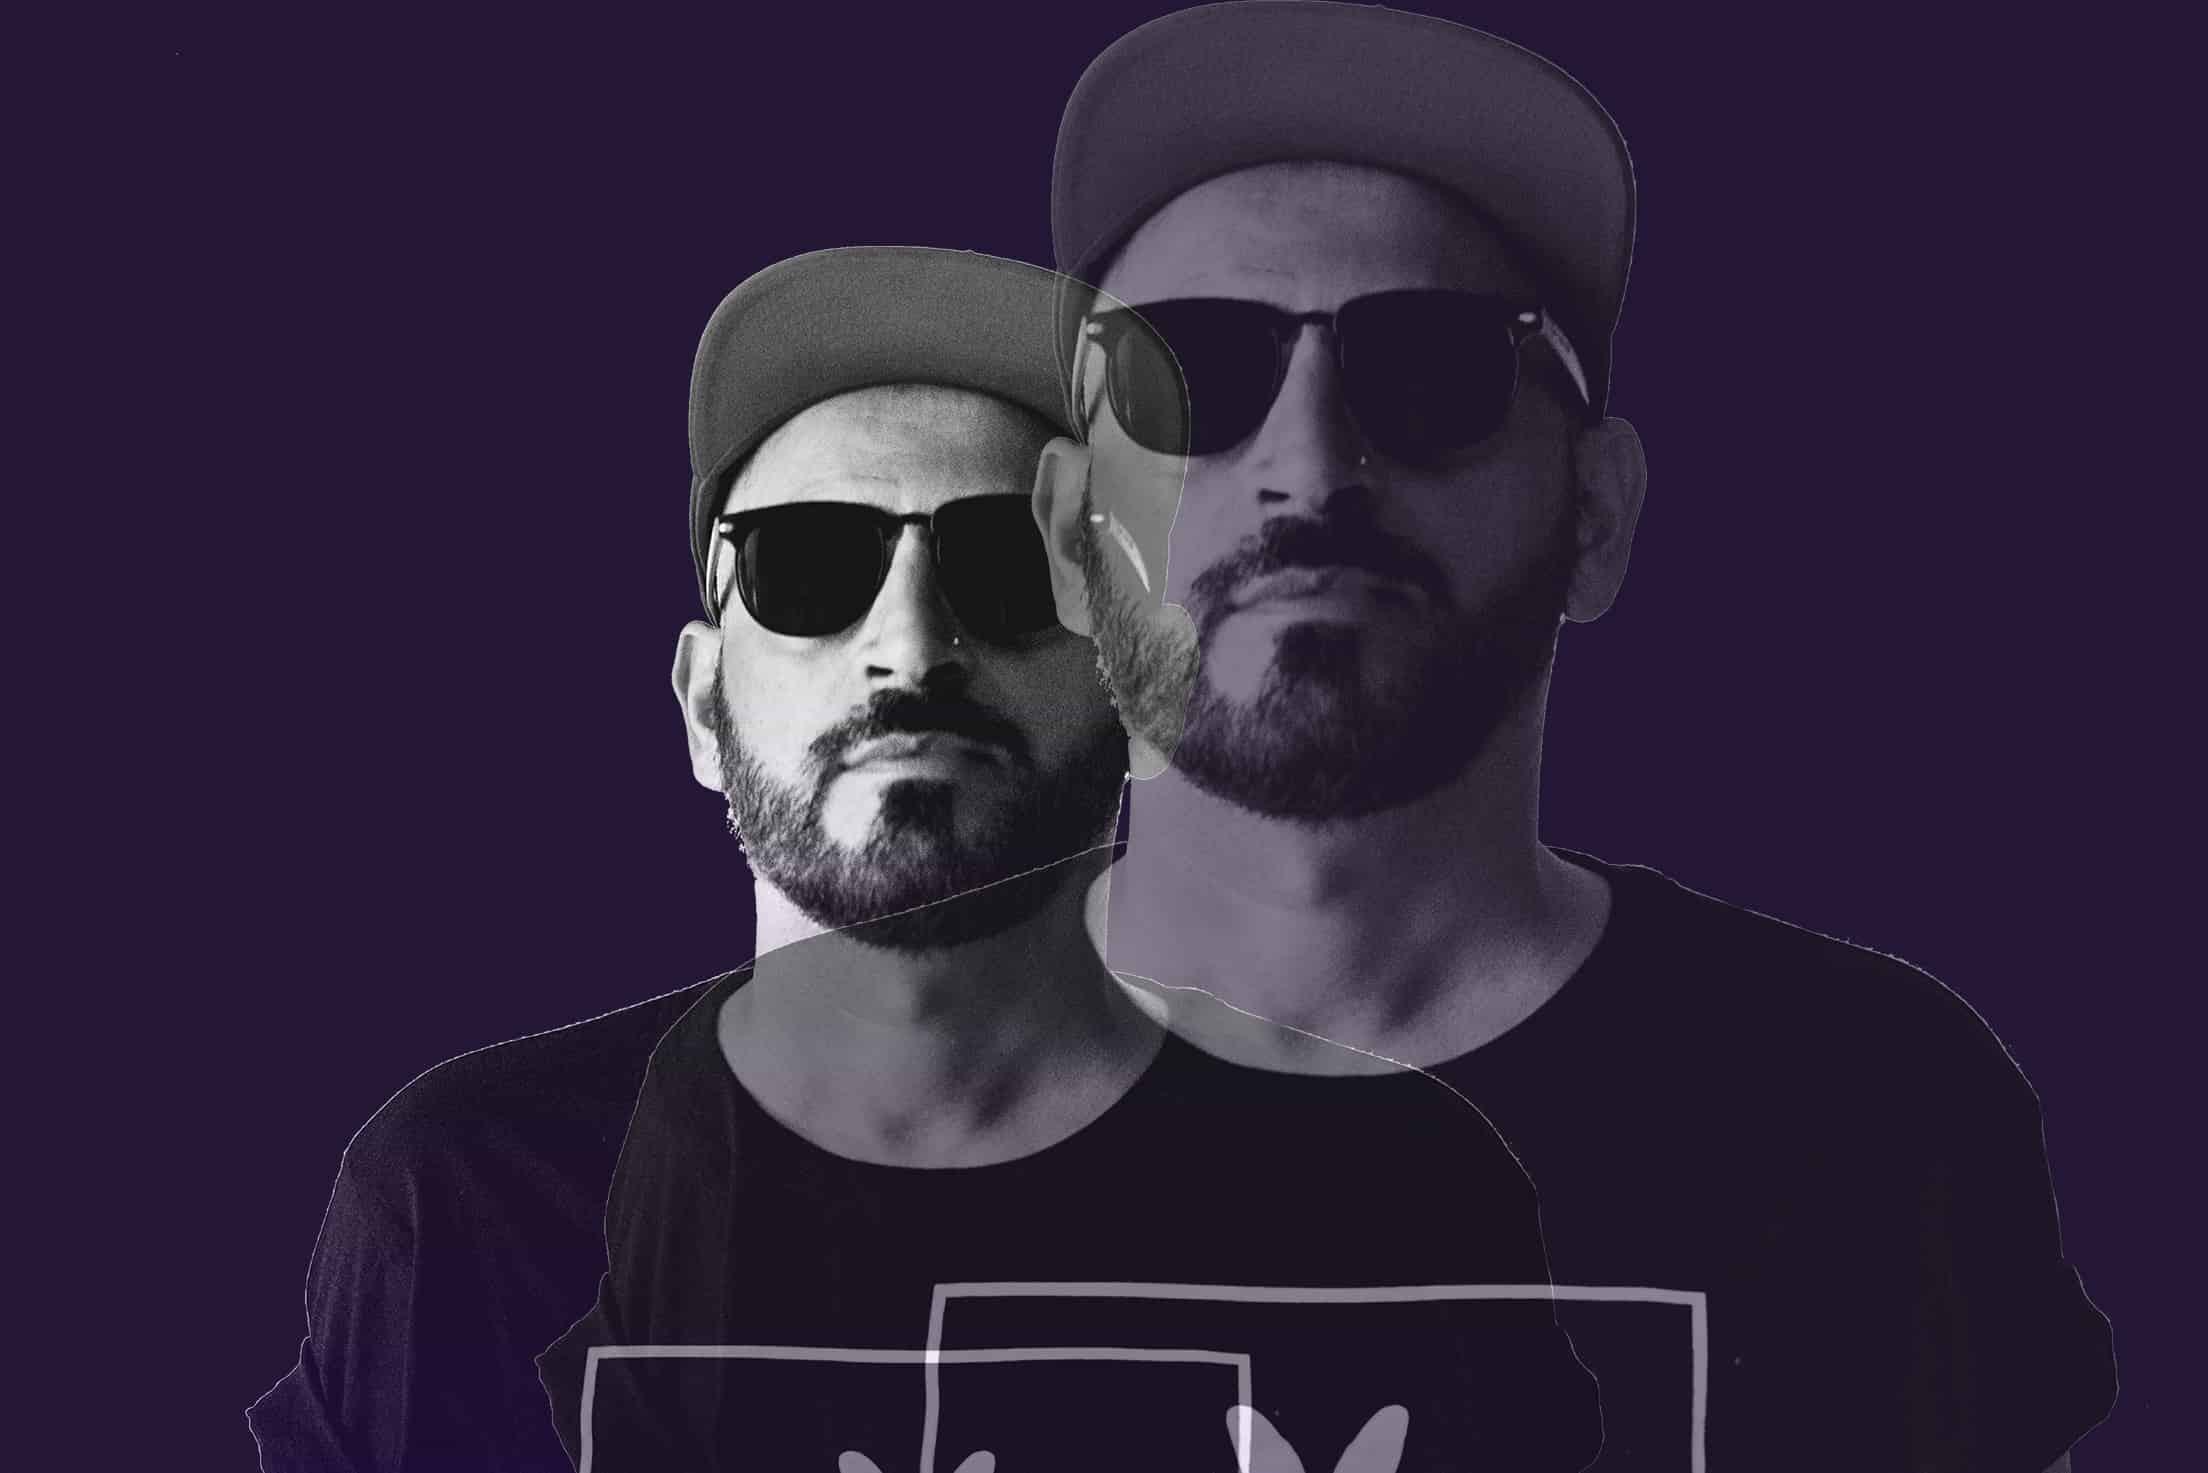 SHARAM JEY – AUTOMATICALLY SWITCH OFF